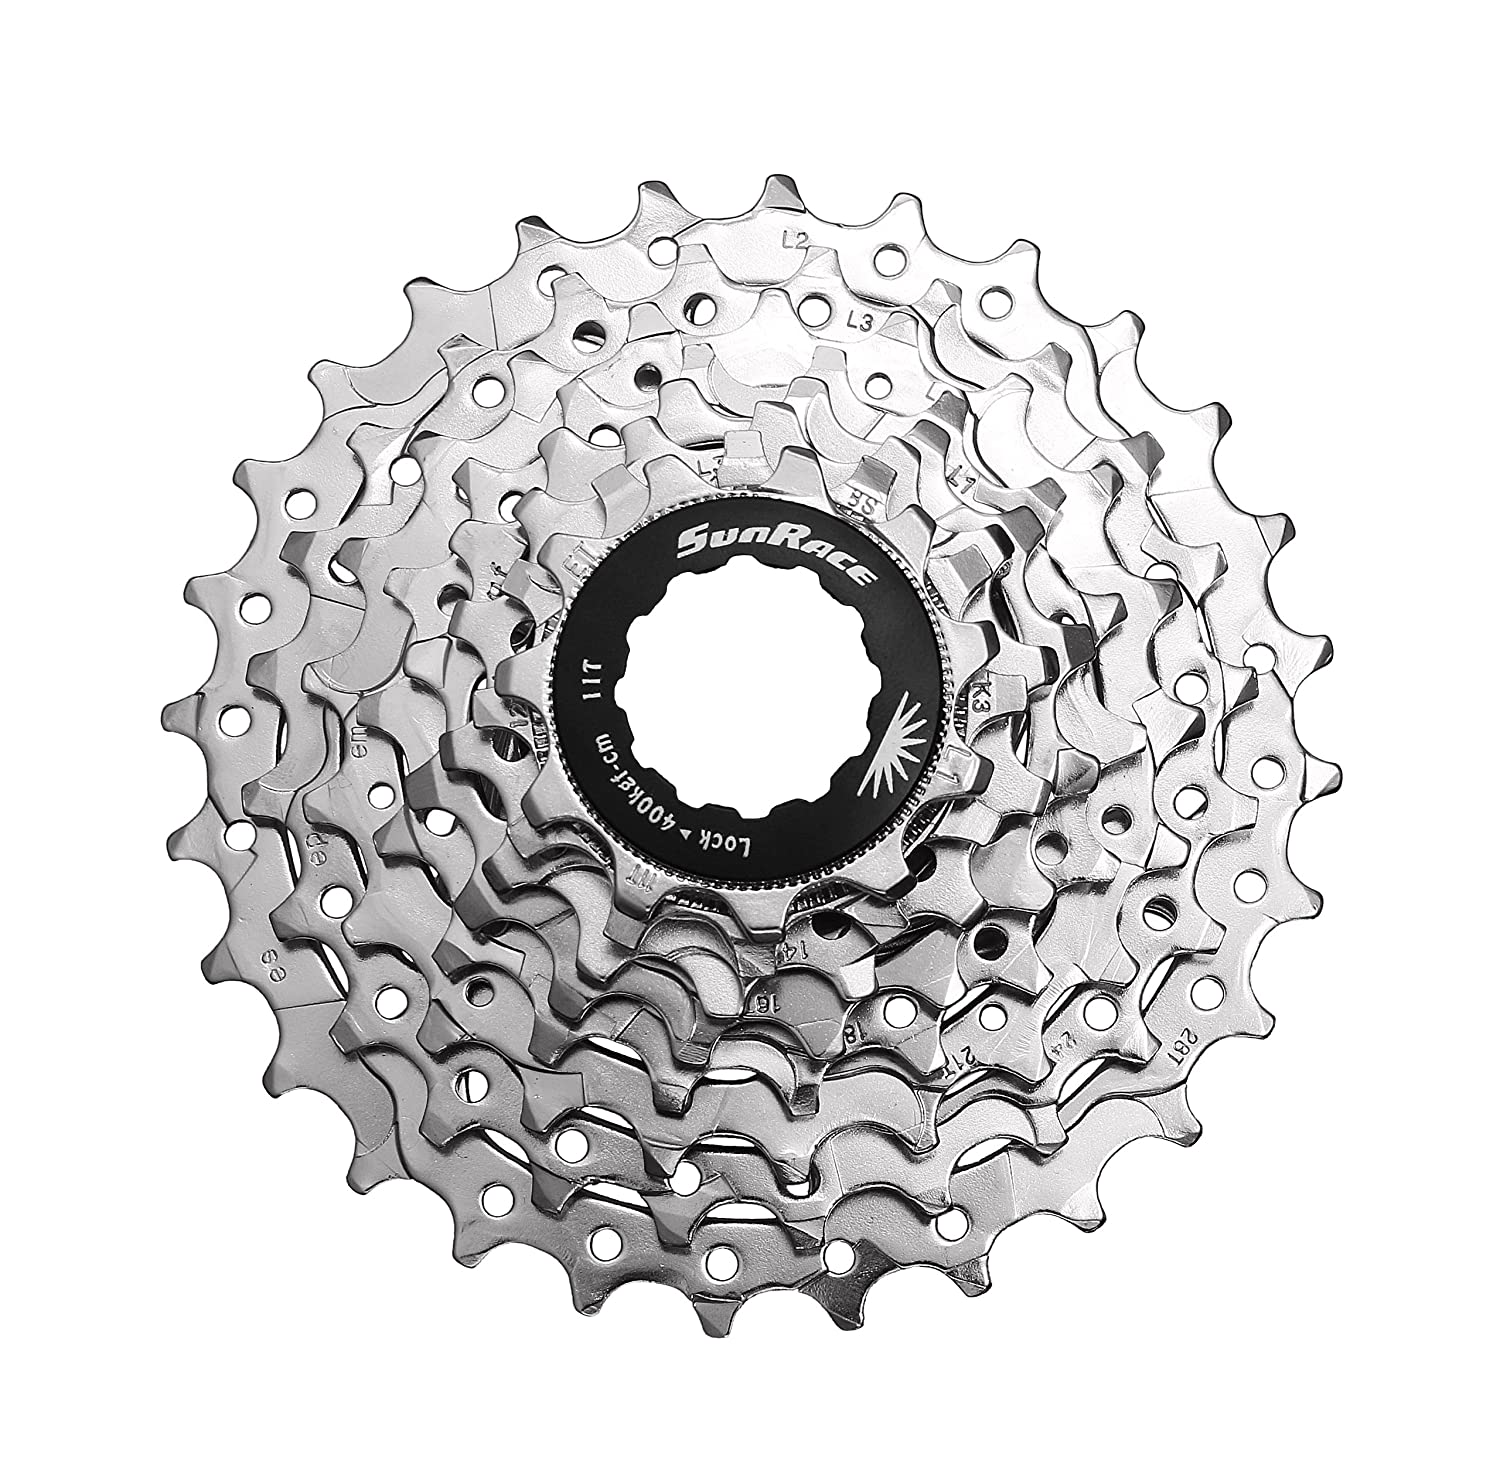 Sporting Goods Sunrace Cassette Csm66 12-34 8 Speed Nickel Cassettes, Freewheels & Cogs